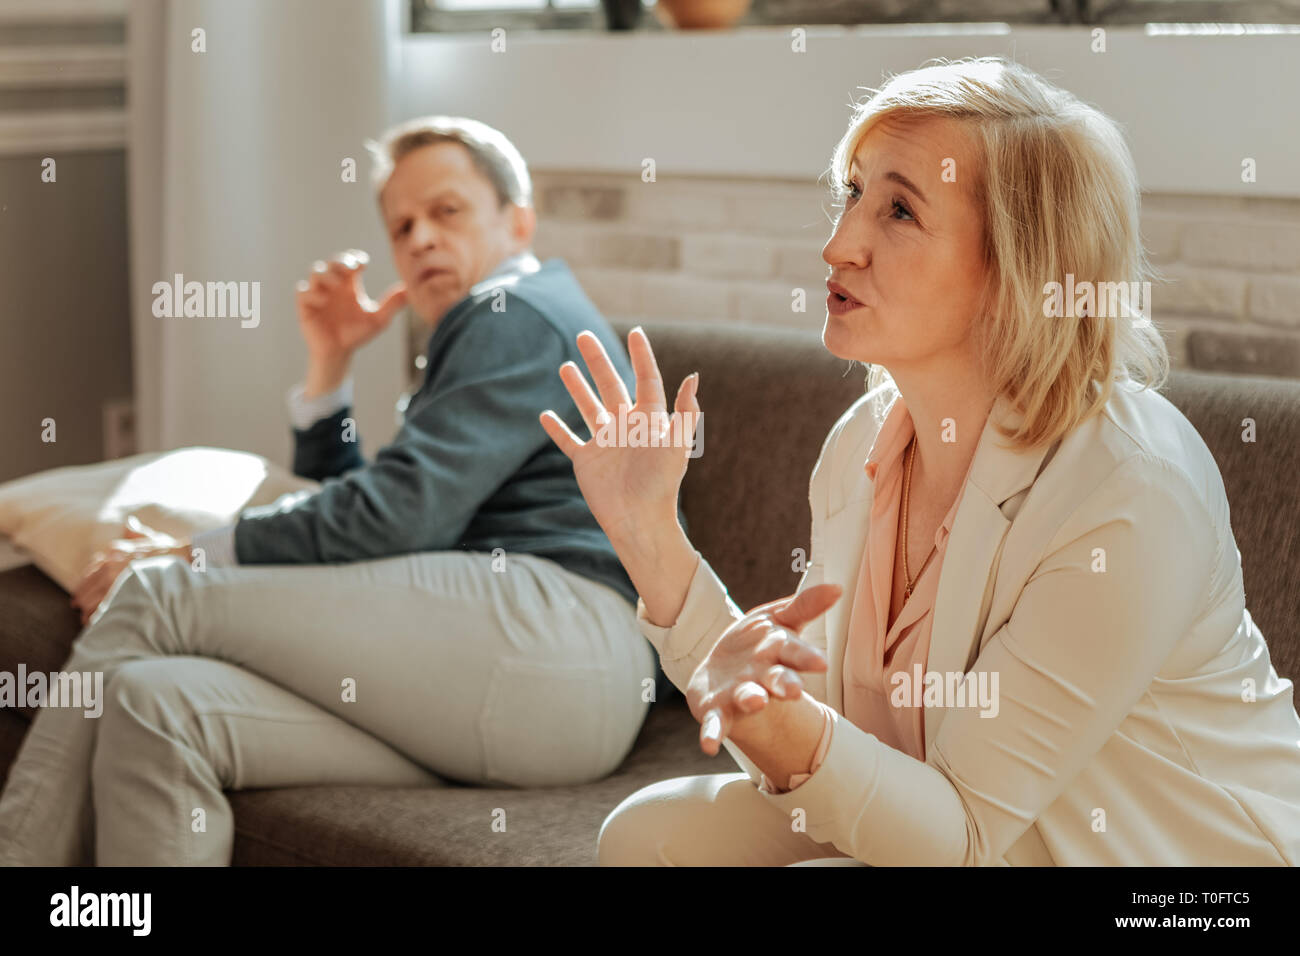 Expressive angry woman actively gesturing while explaining her discontentment - Stock Image